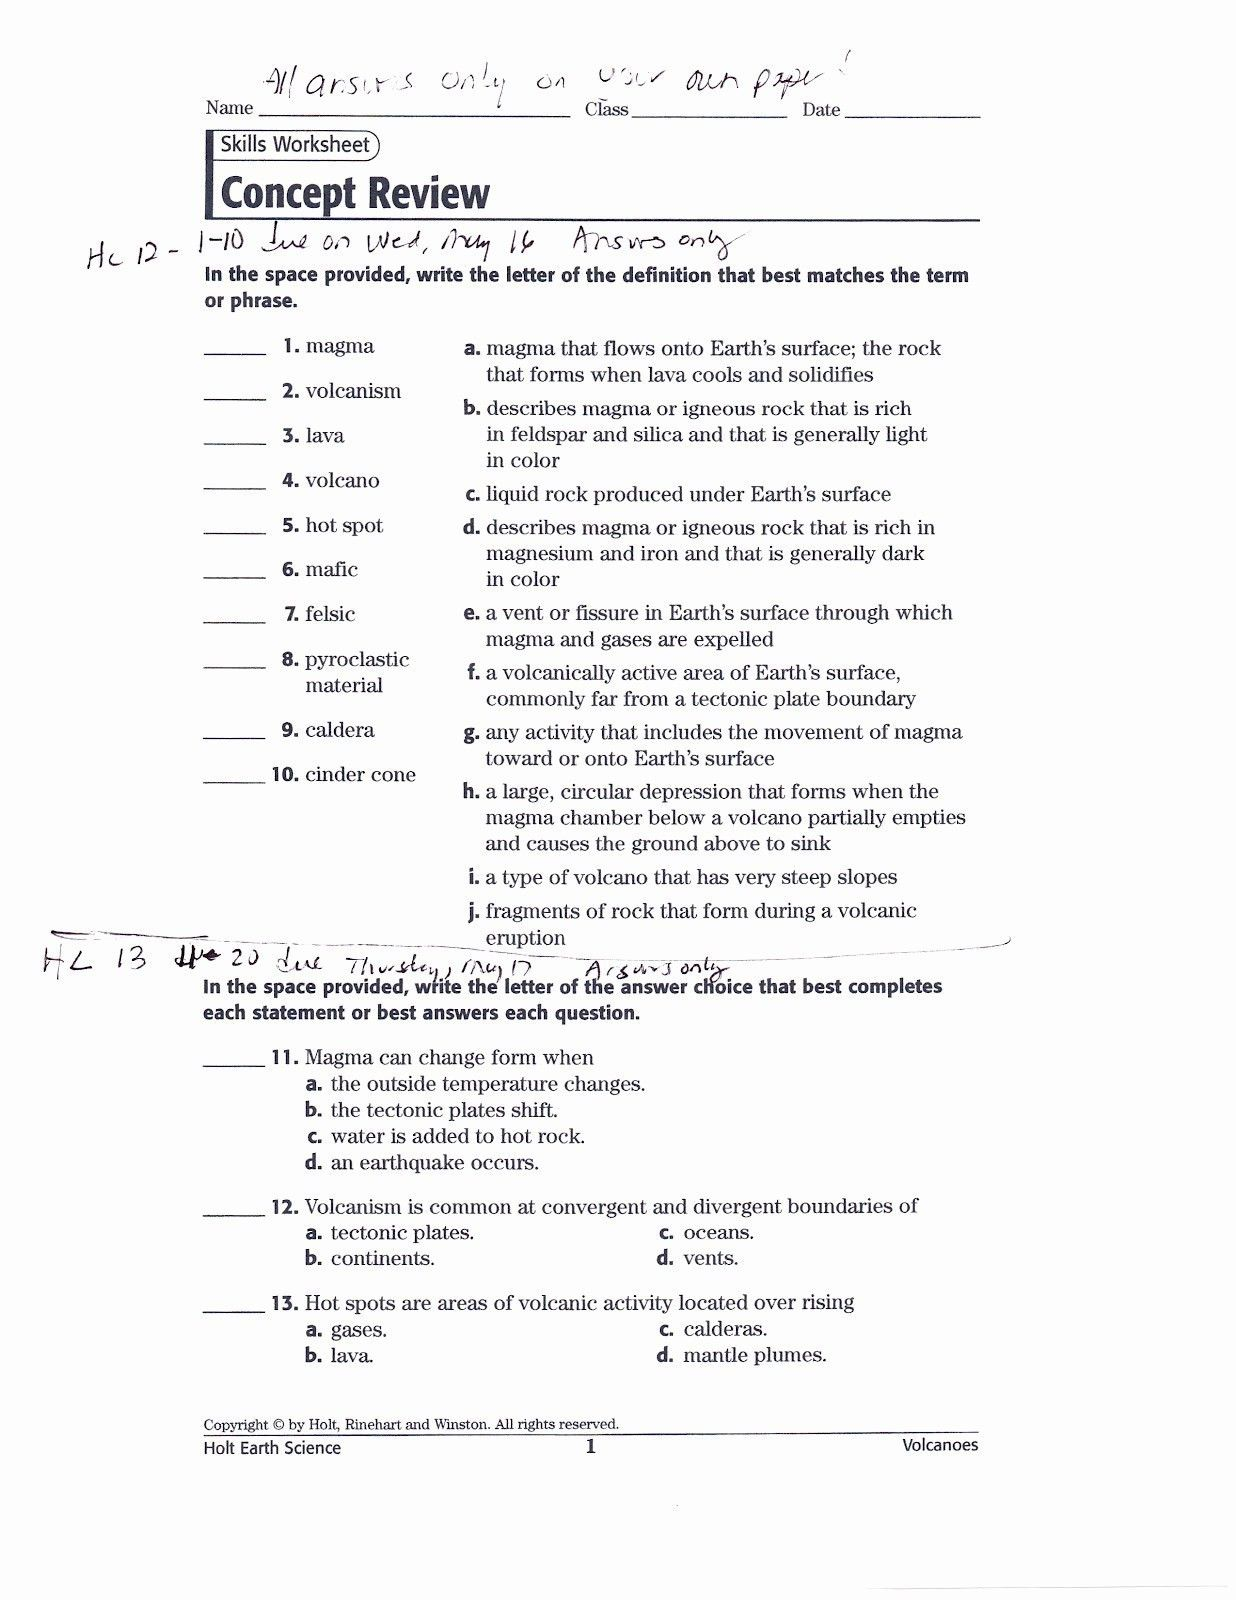 Science Skills Worksheet Answer Key